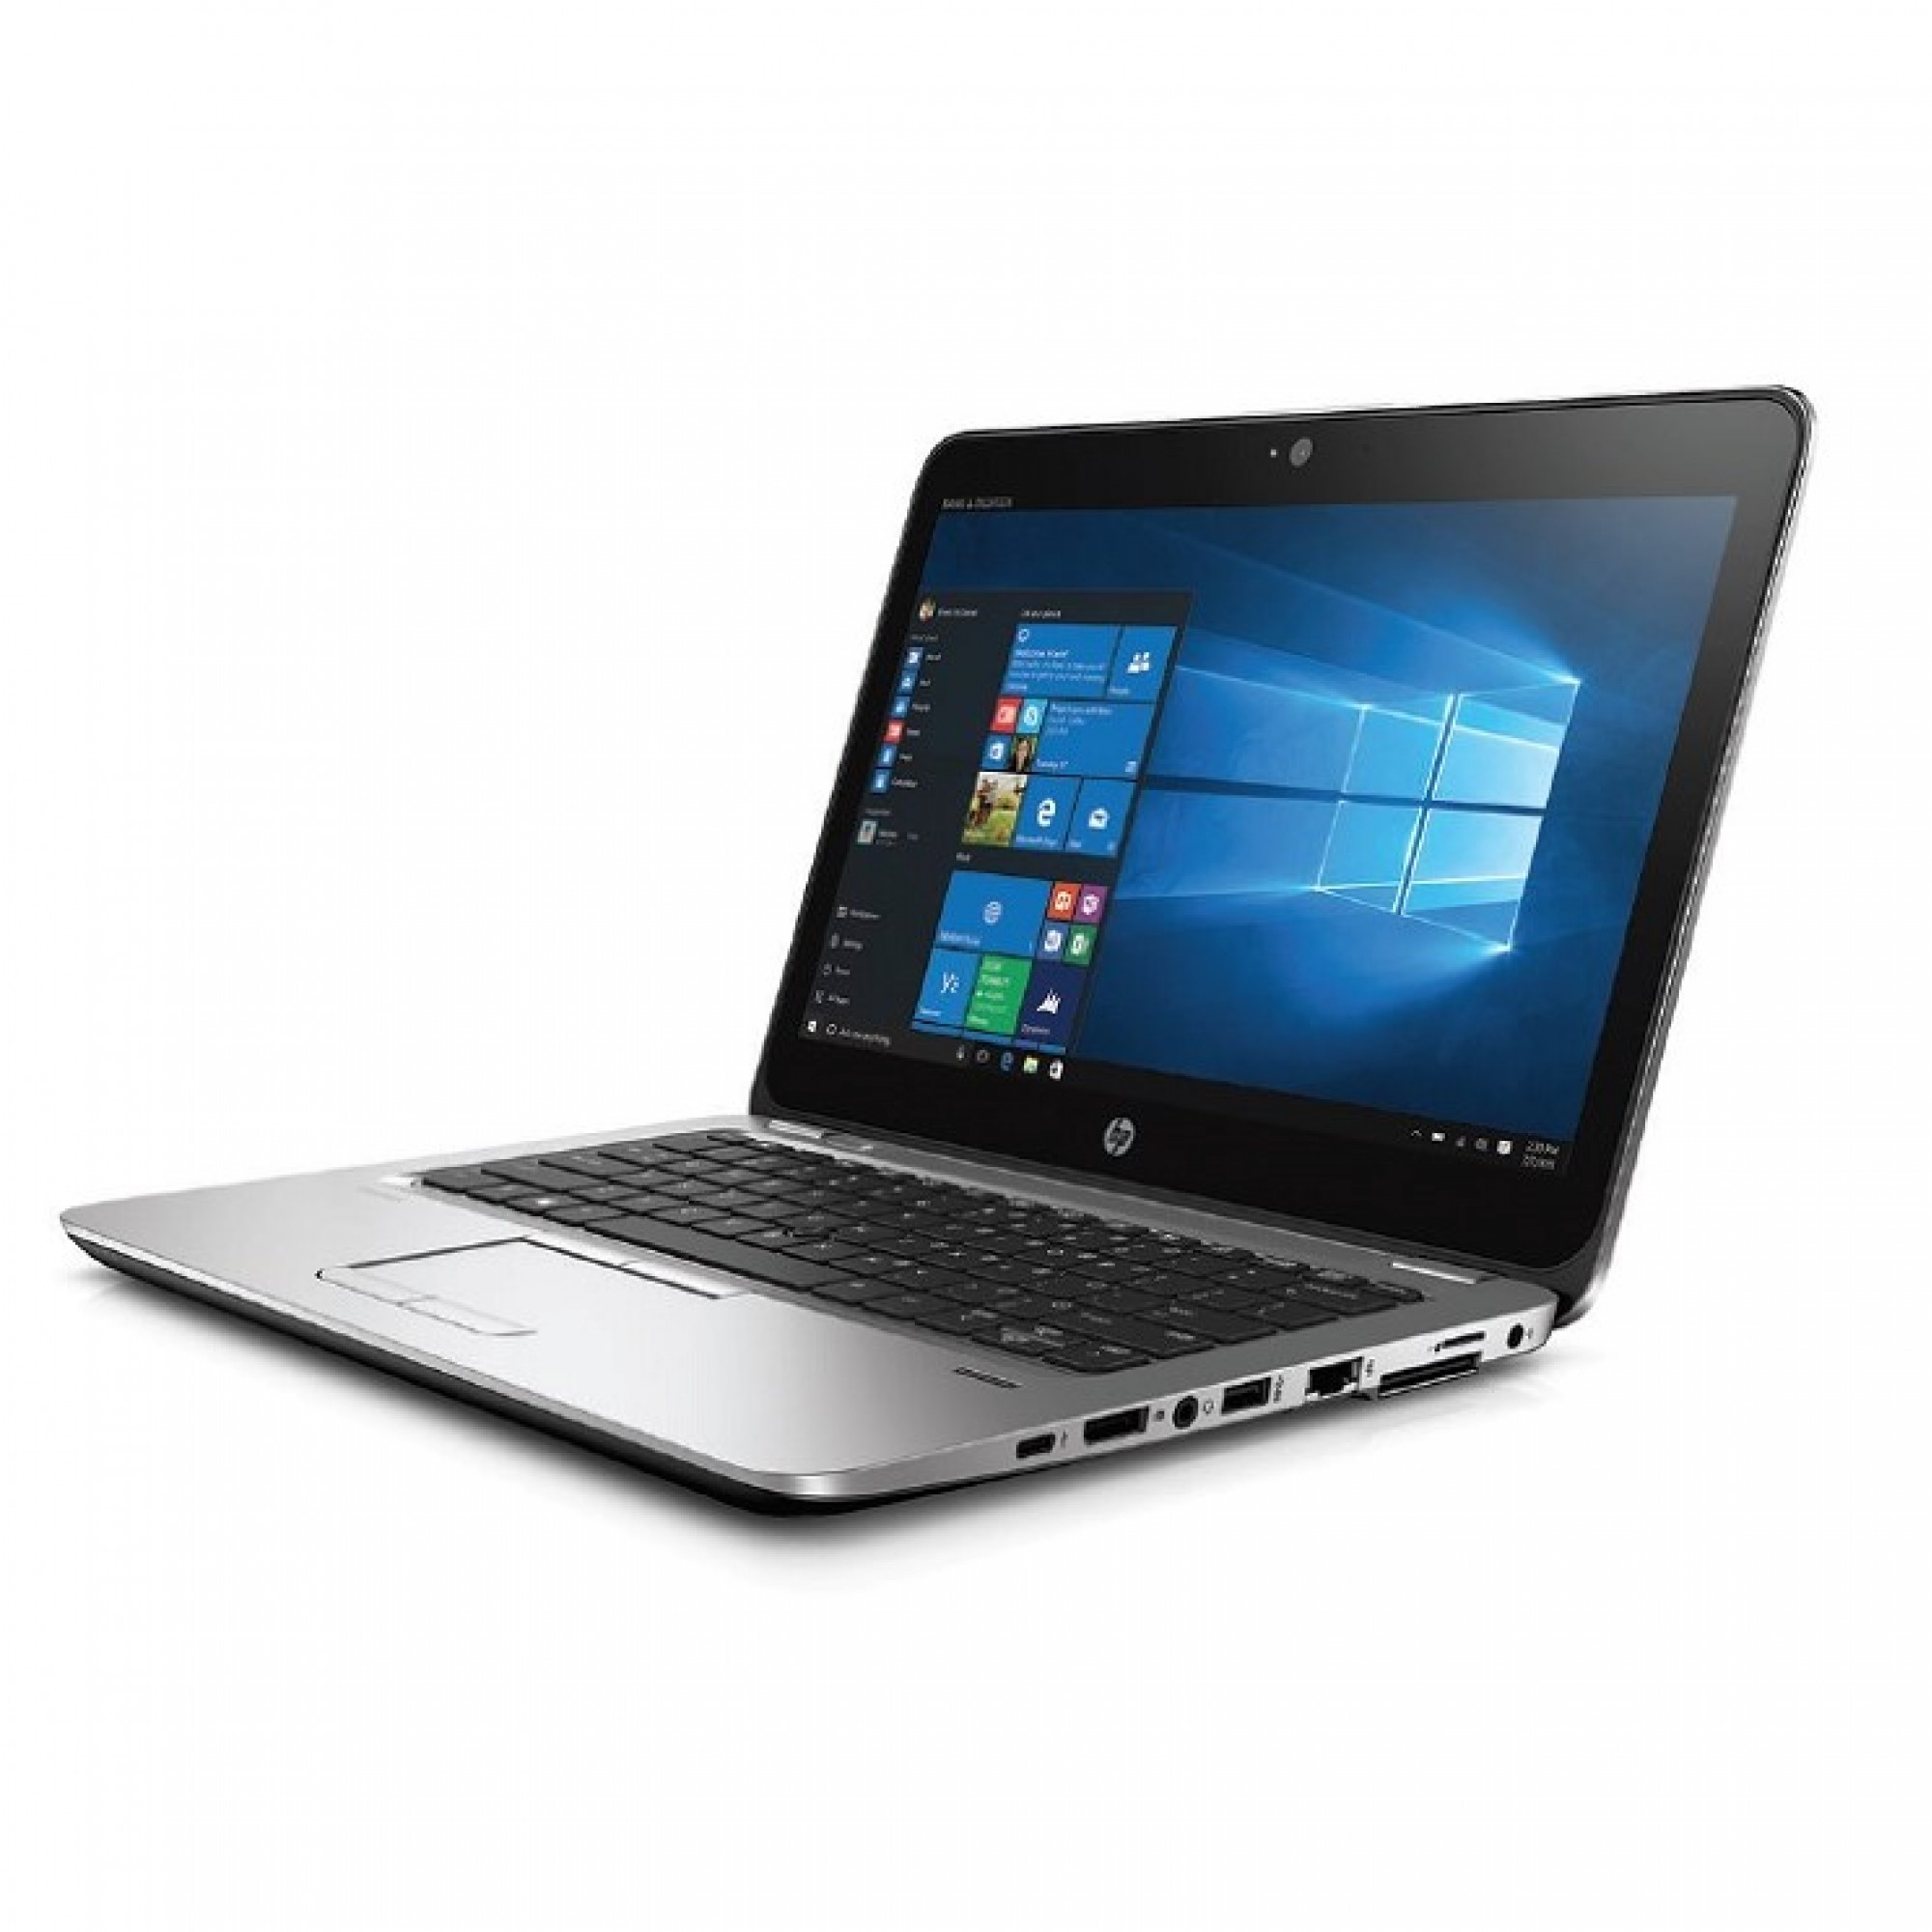 12-inch HP Elitebook 820 G3 Laptop Image